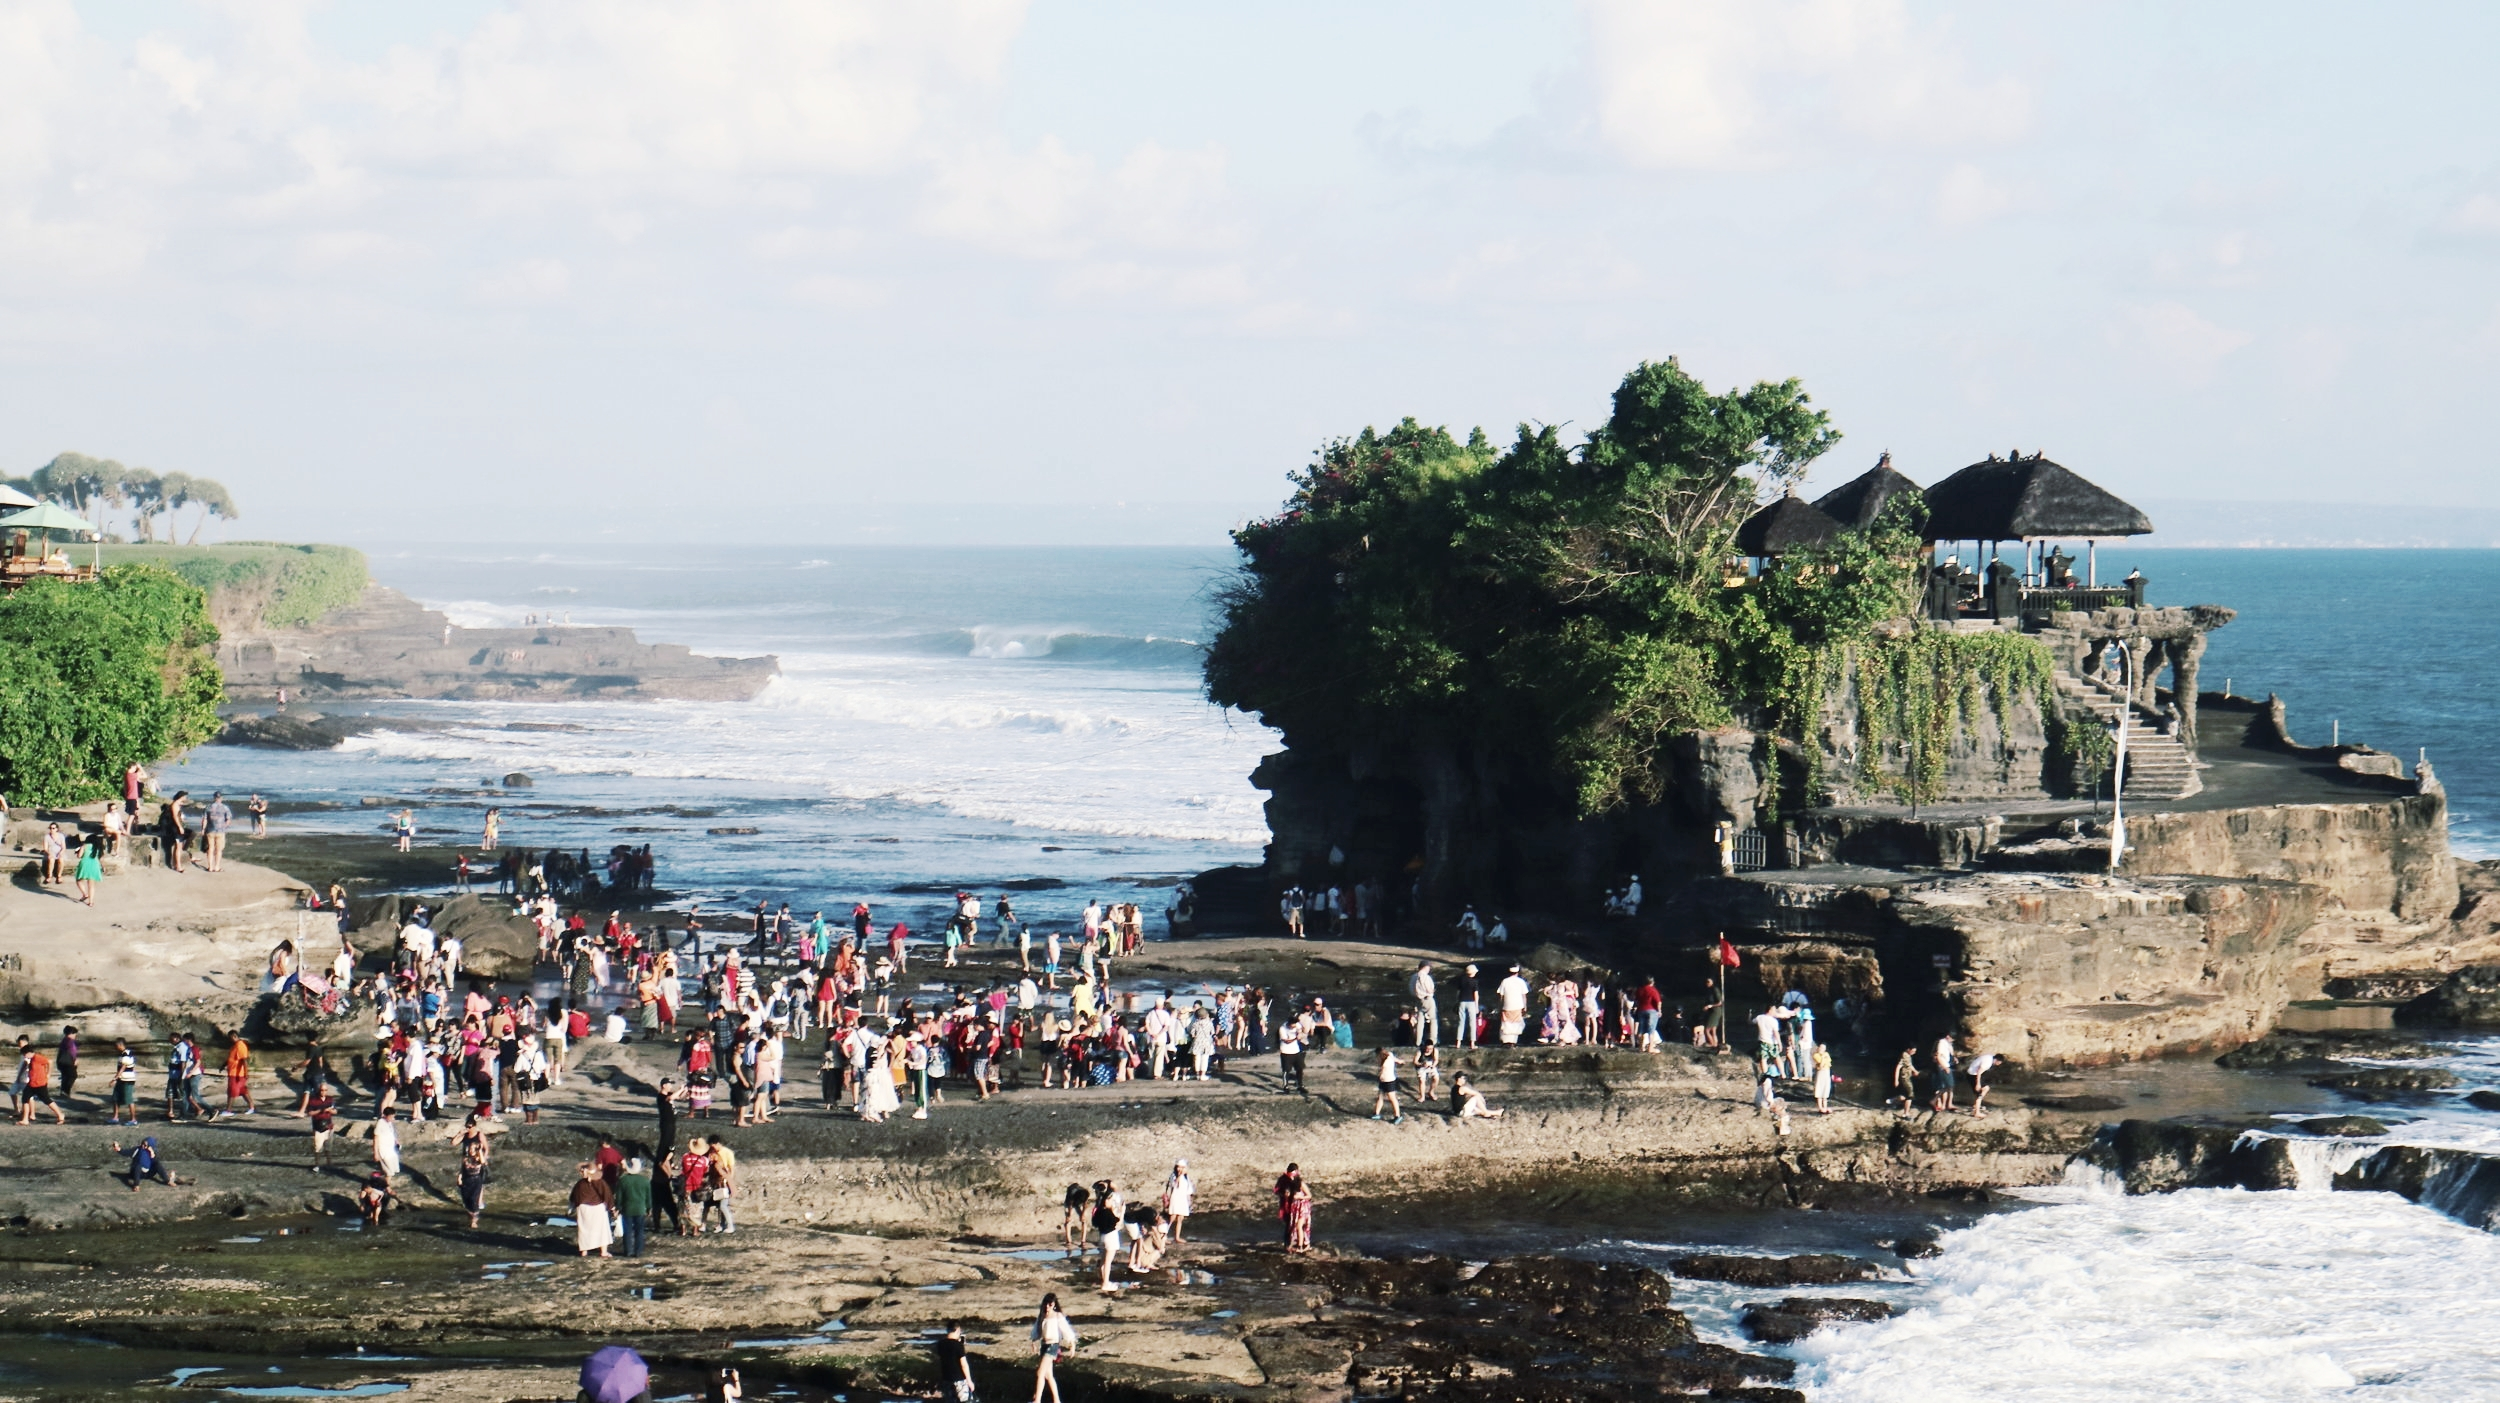 Tanah Lot - PILGRIMAGE TEMPLE PURA TANAH LOT